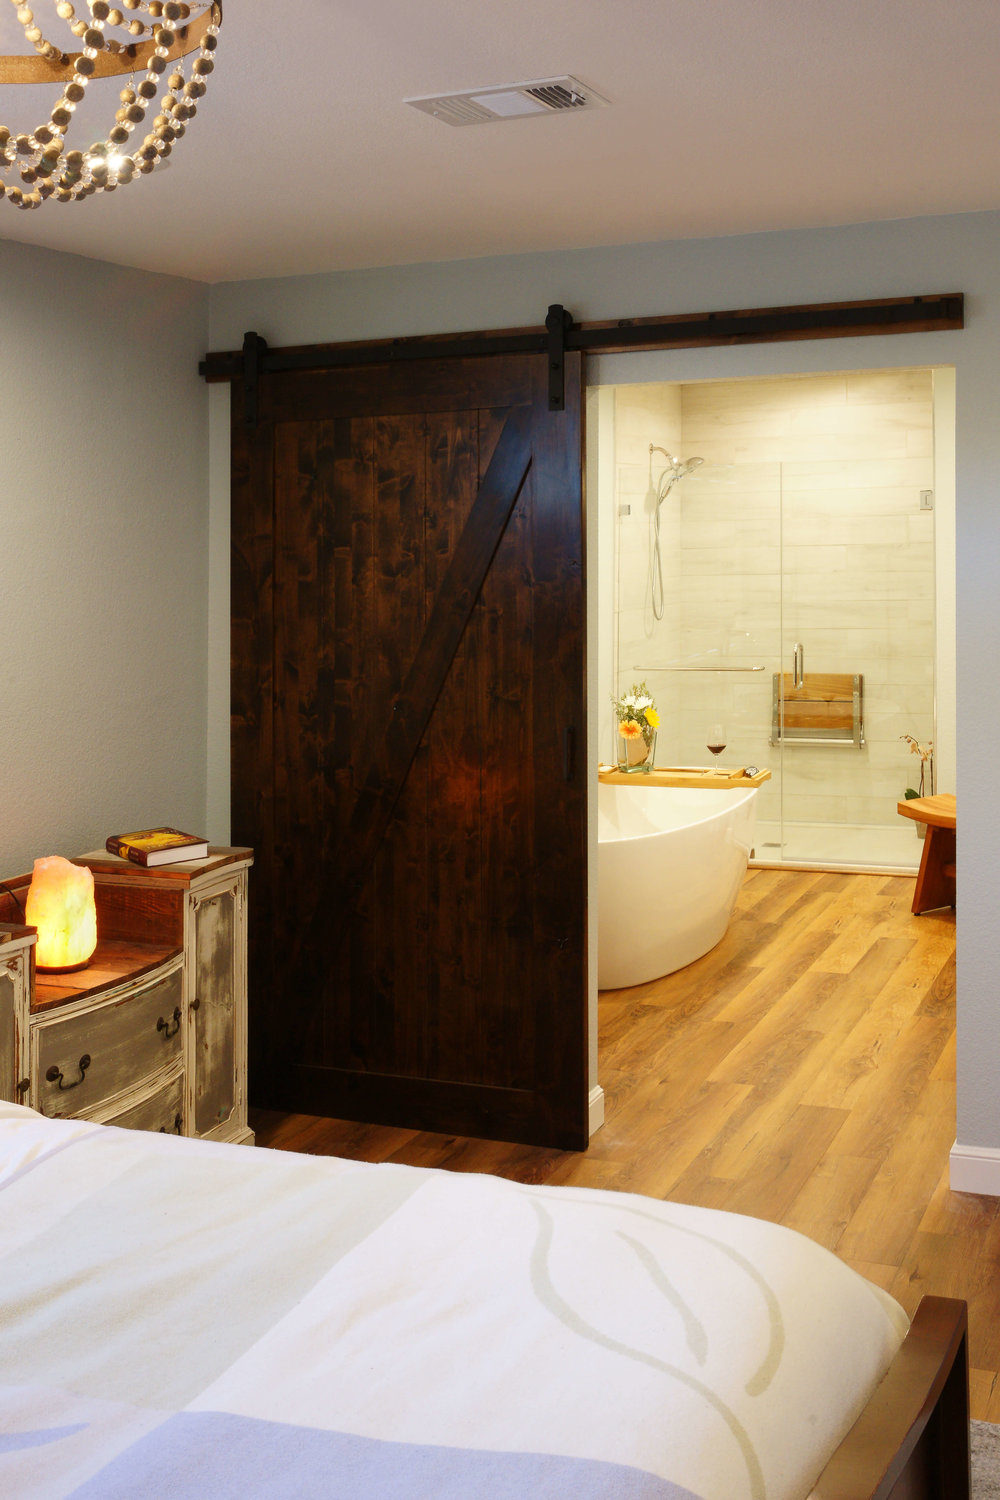 Design detail: Sliding barn door continues the reclaimed feel and maximizes space